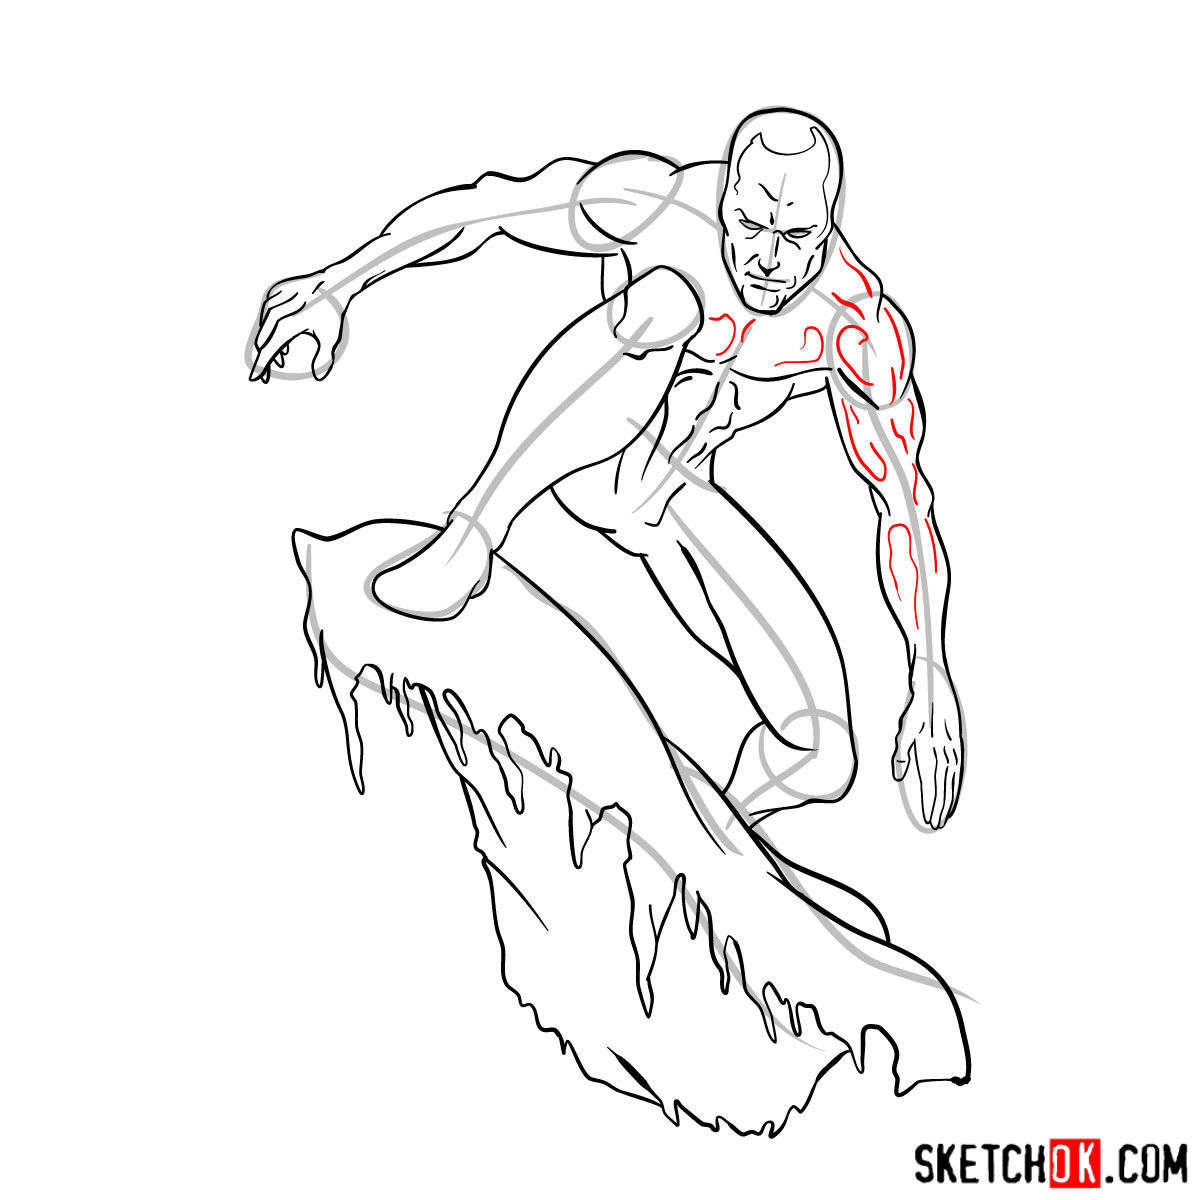 How to draw Iceman - step by step drawing tutorial - step 13